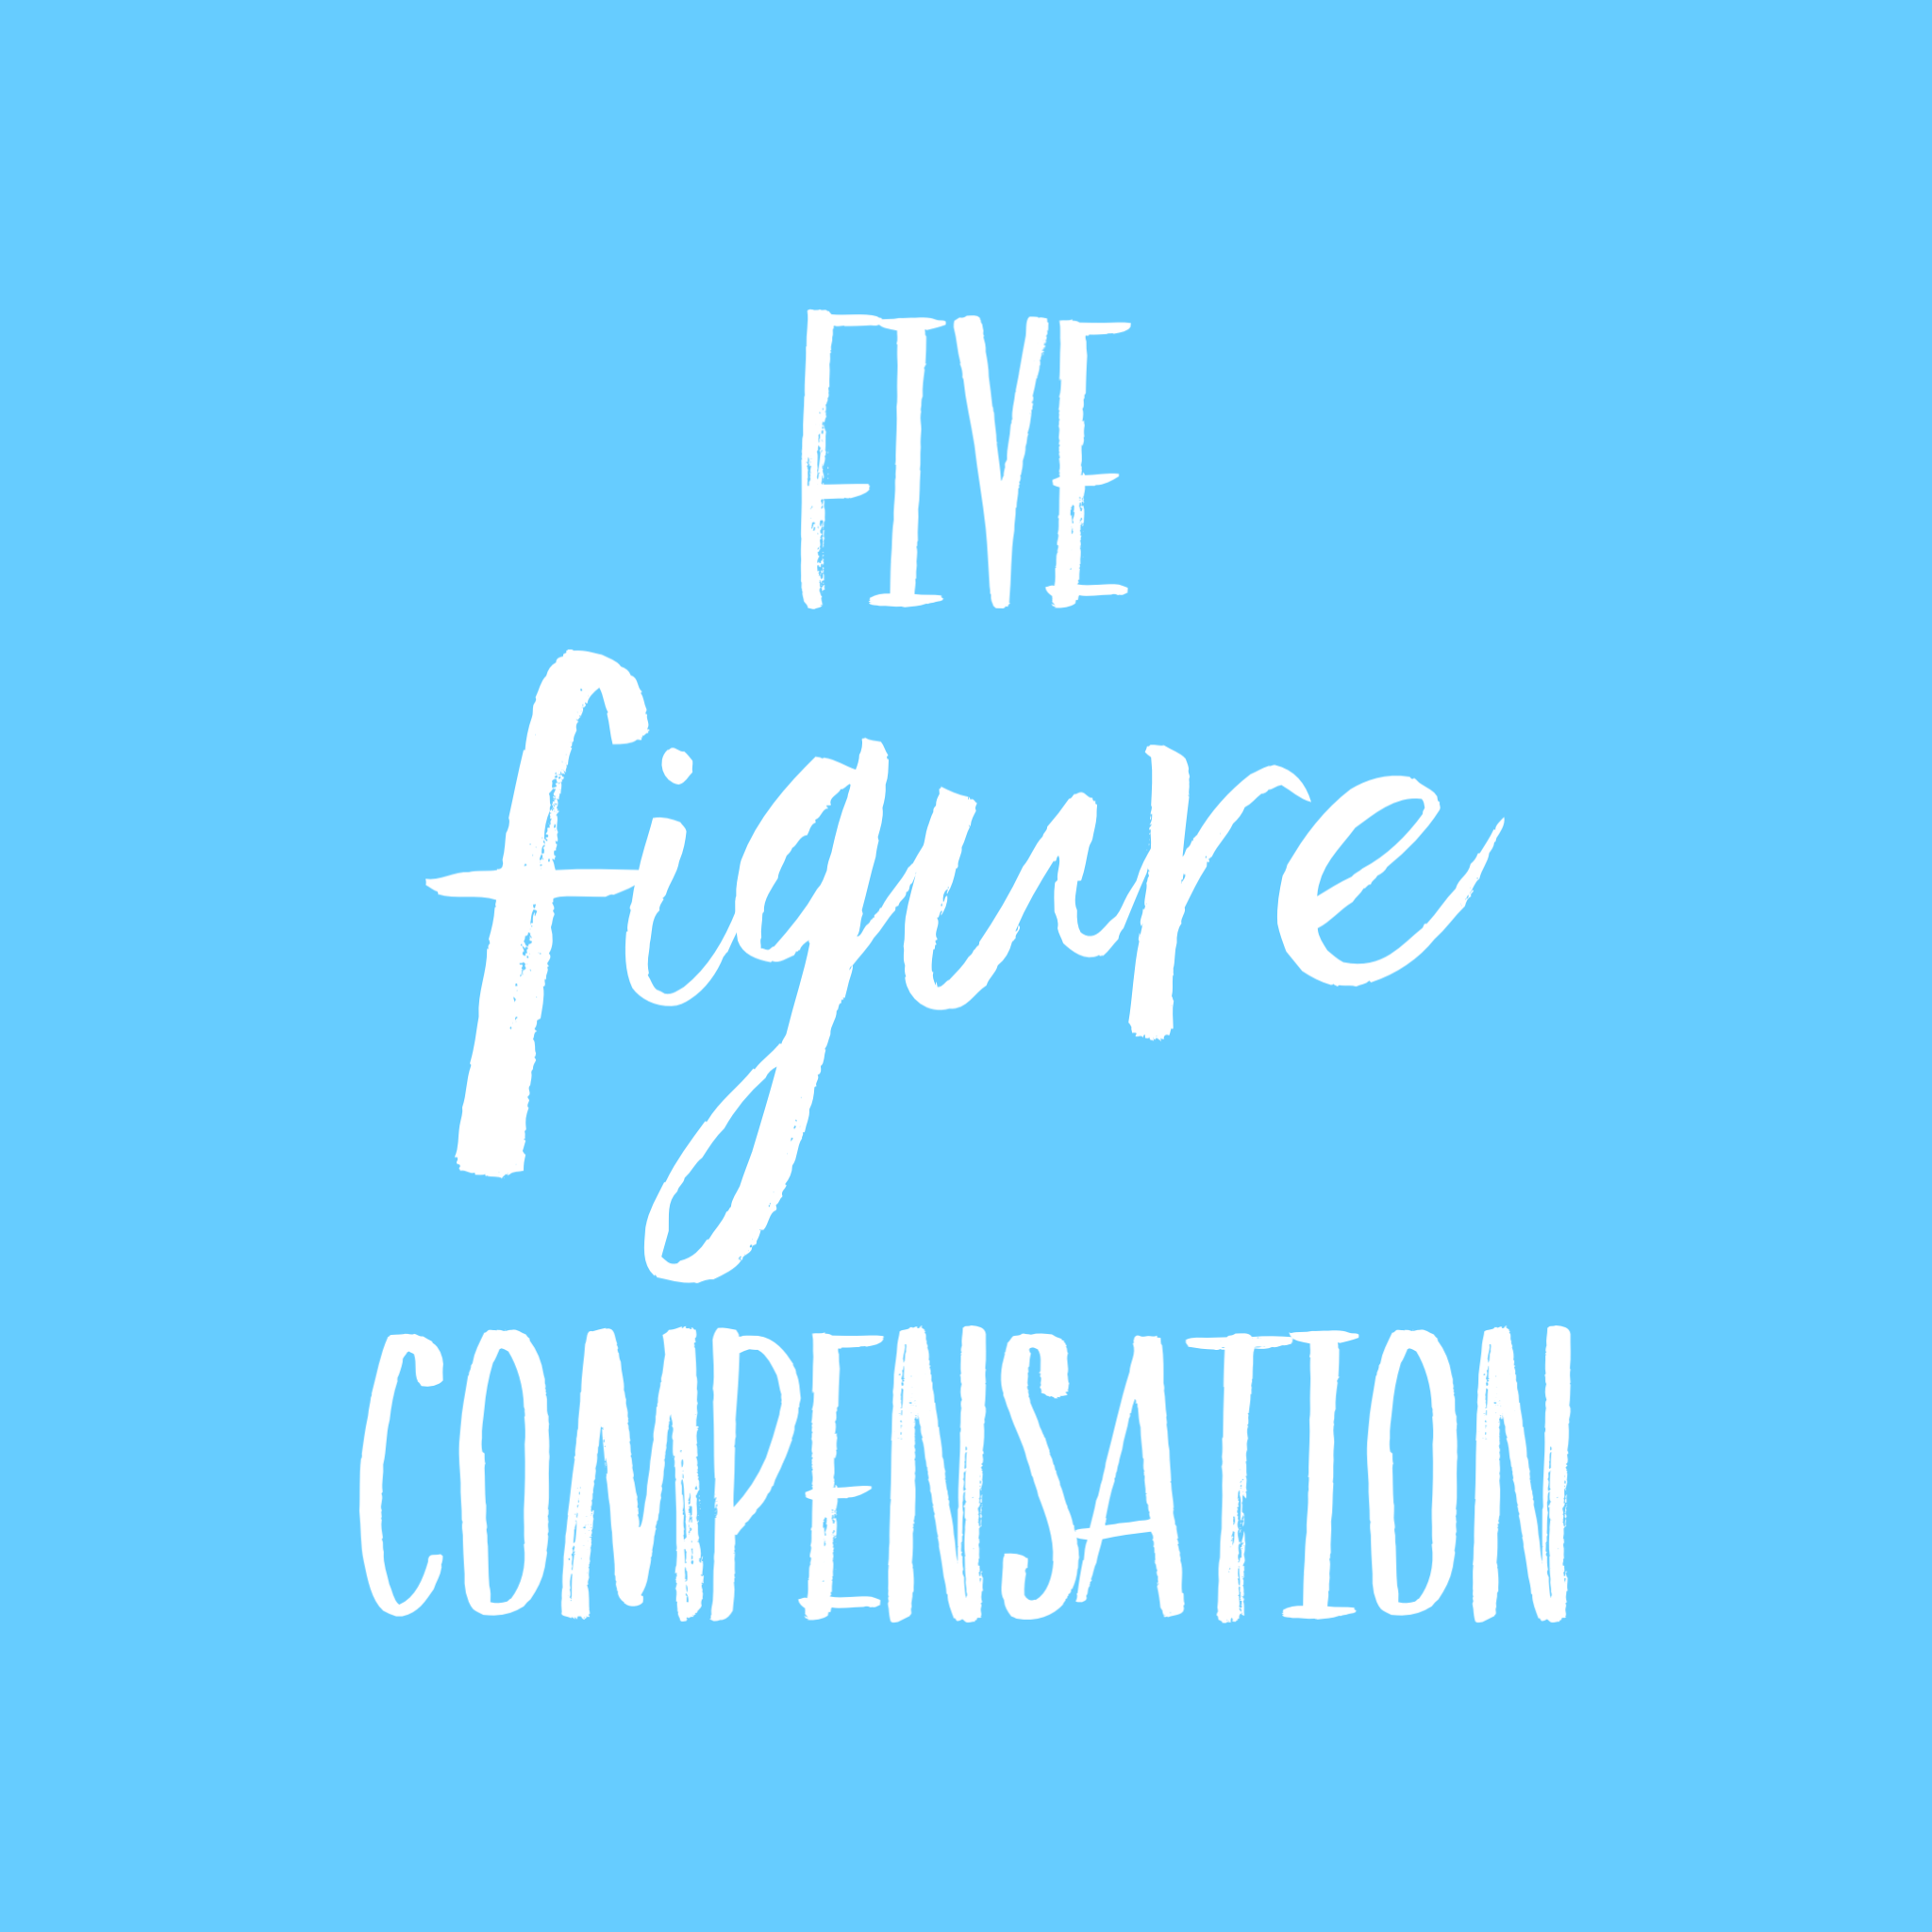 Five Figure Compensation